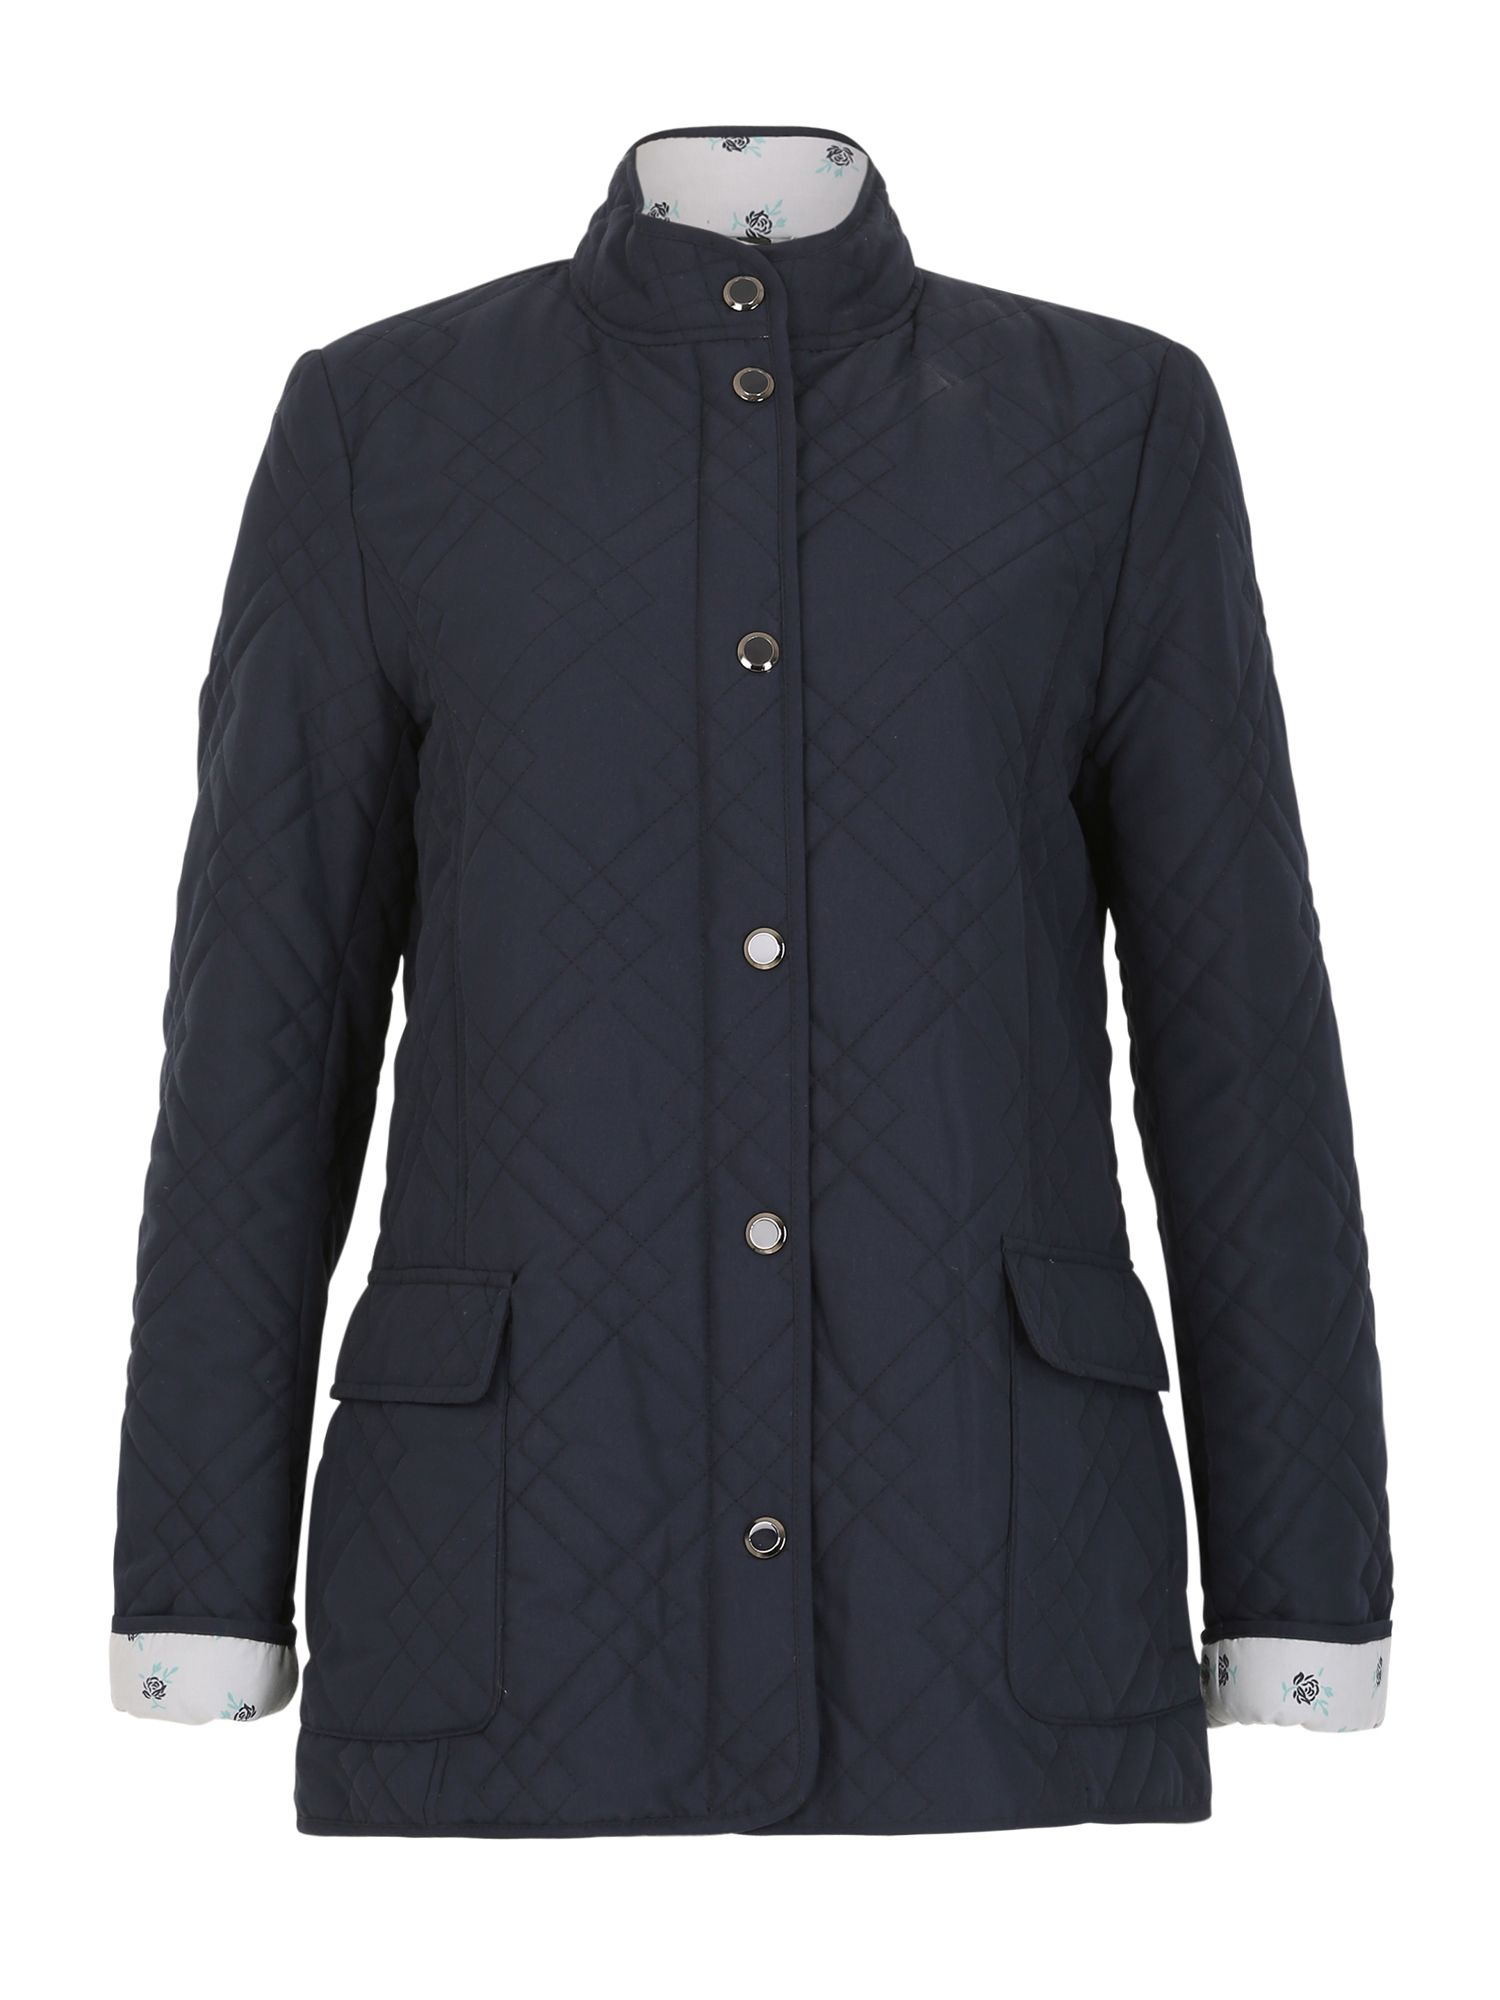 David Barry Light Weight Microfibre Quilted Jacket, Blue